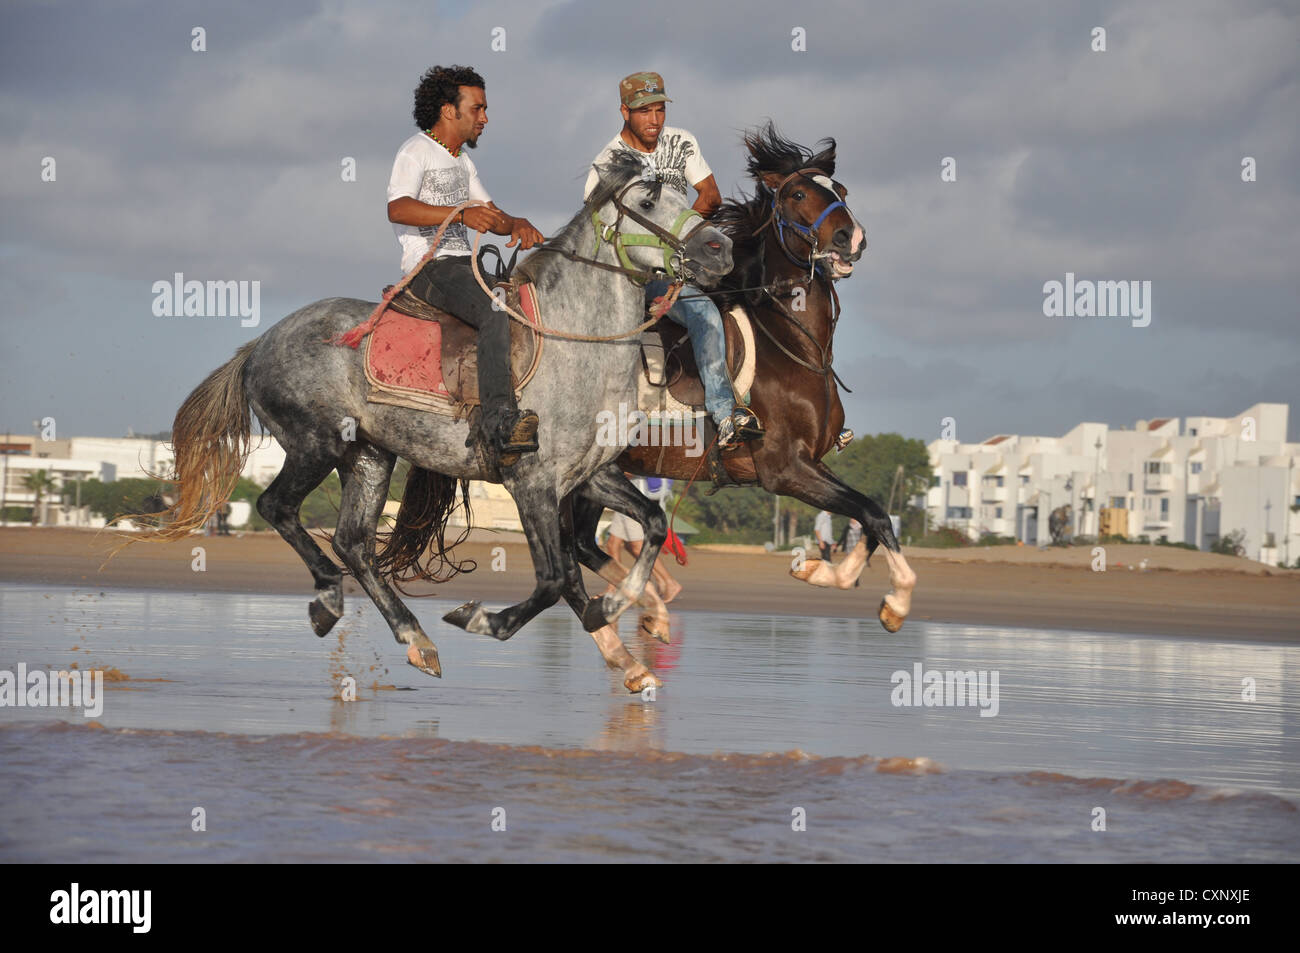 Arabian horses being ridden in the sea - Stock Image